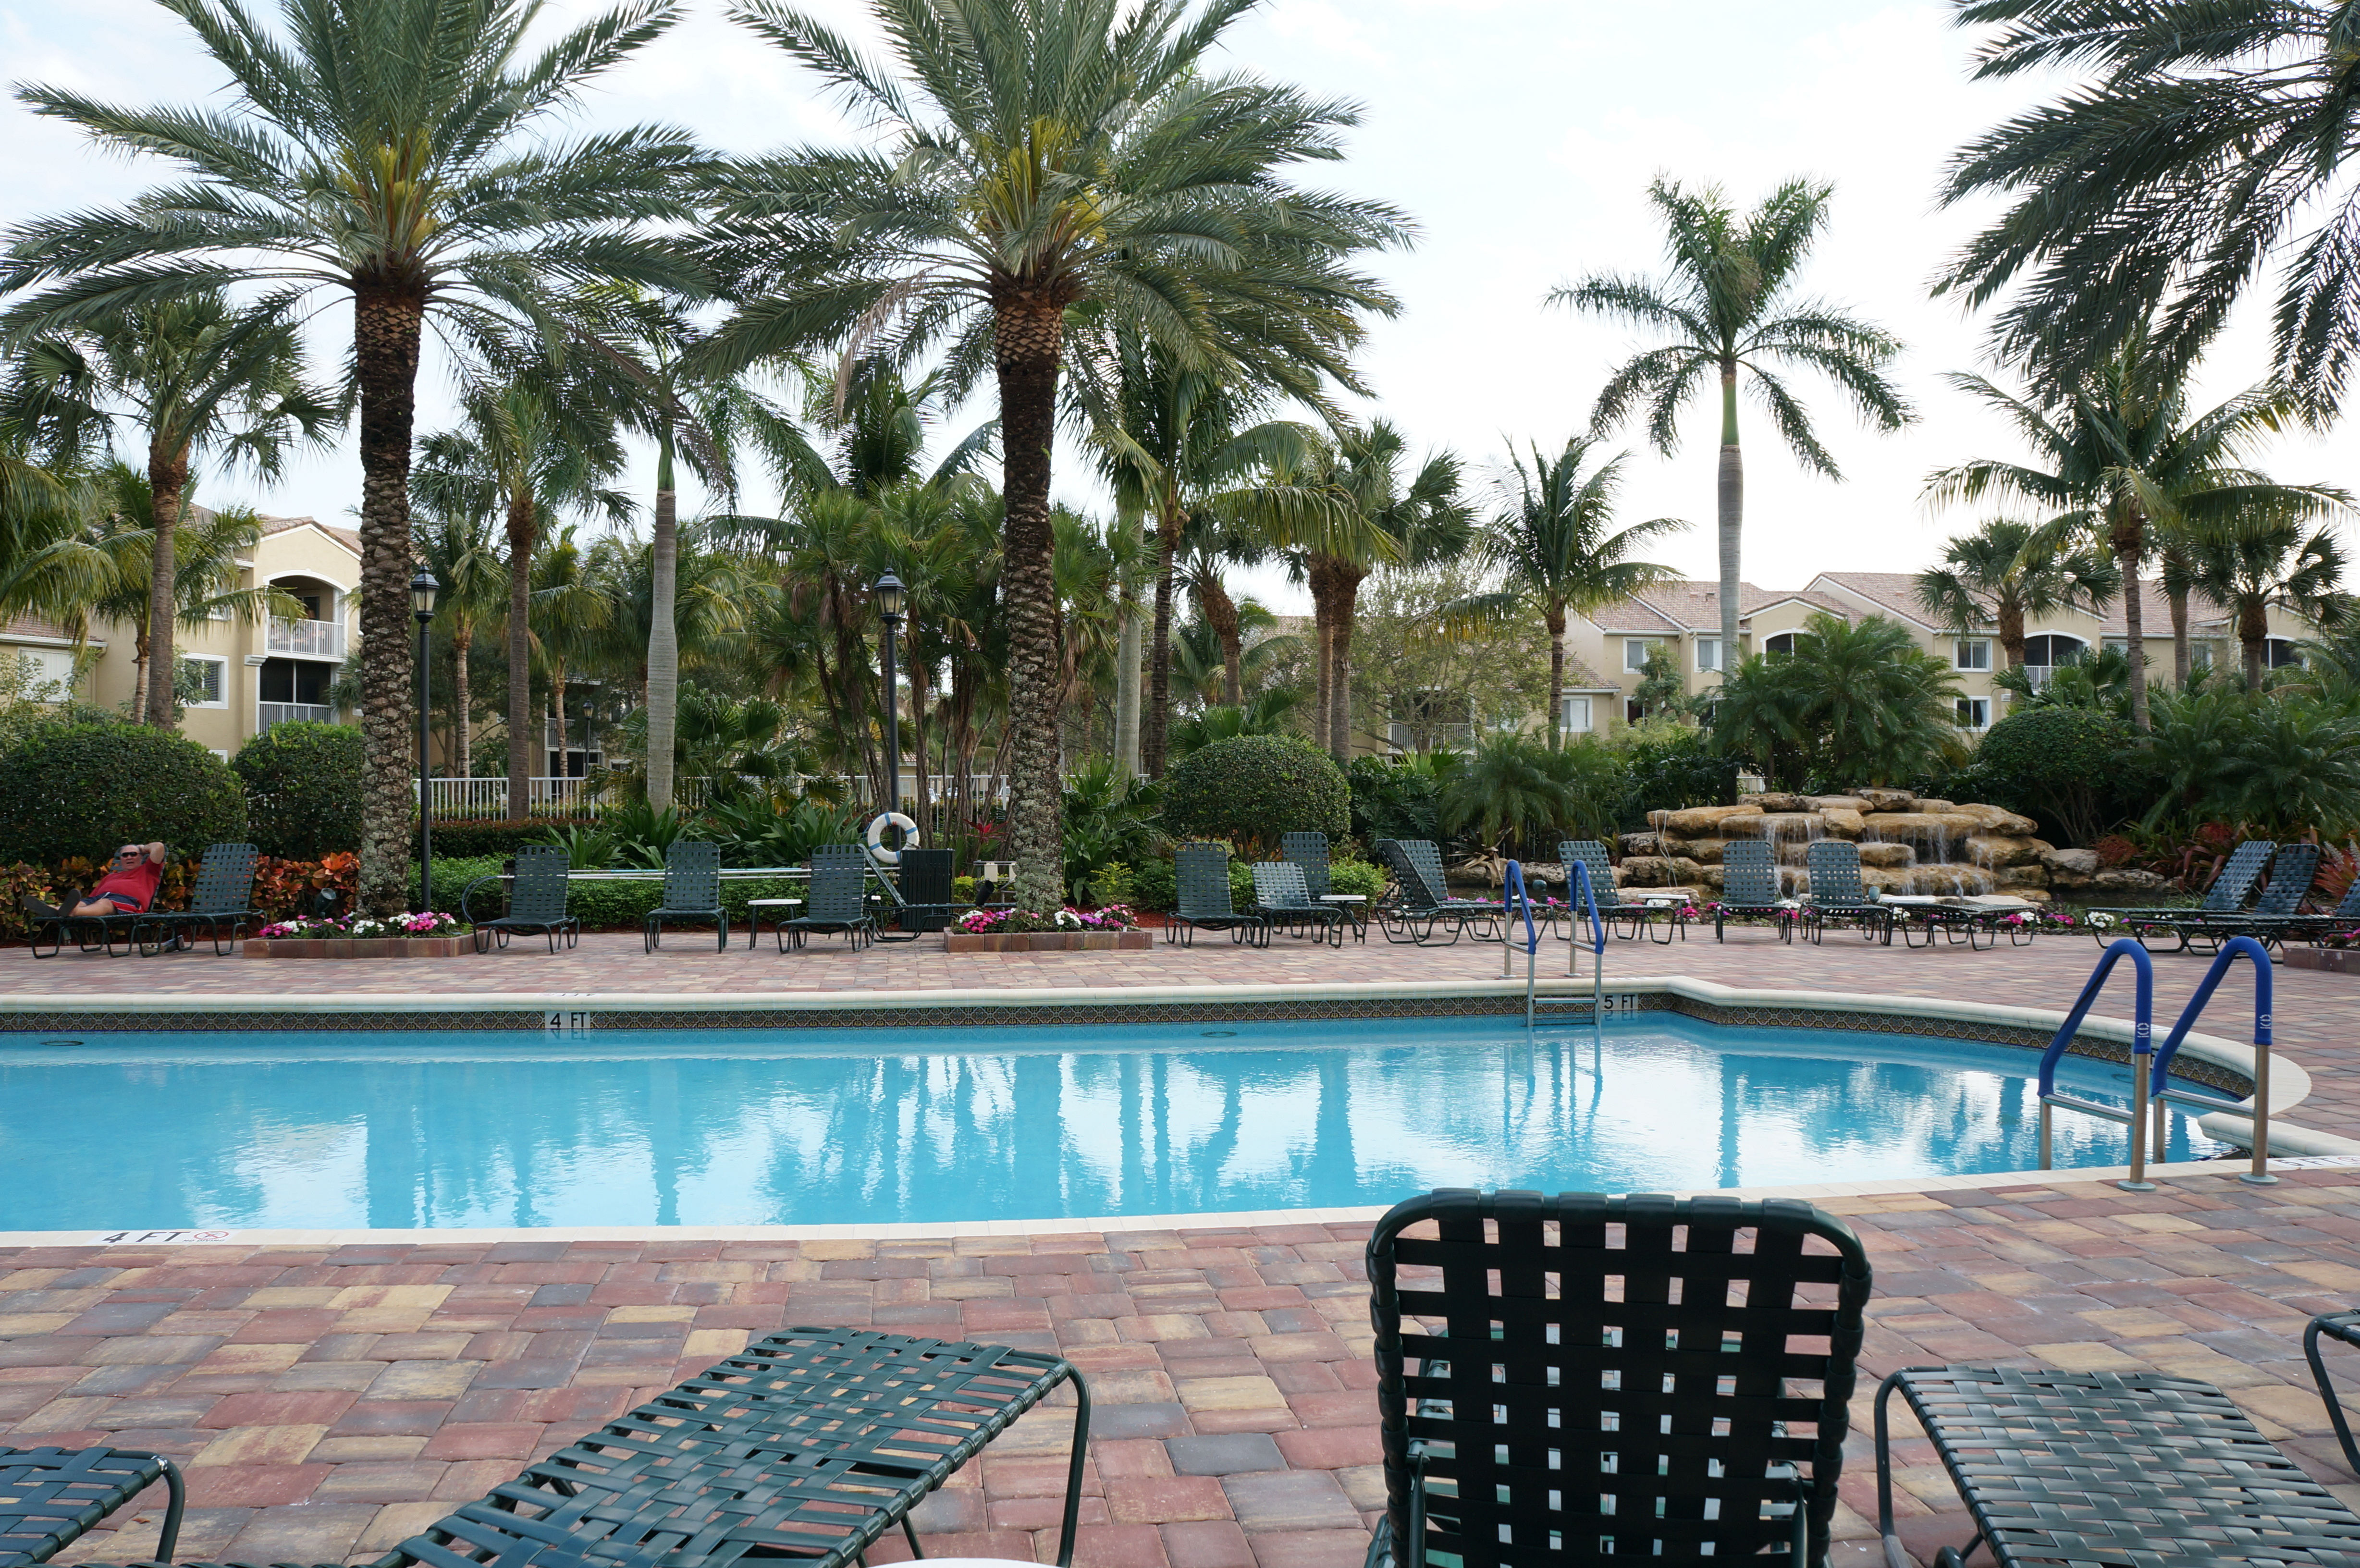 Community Pool at Lighthouse Cove Tequesta Condos